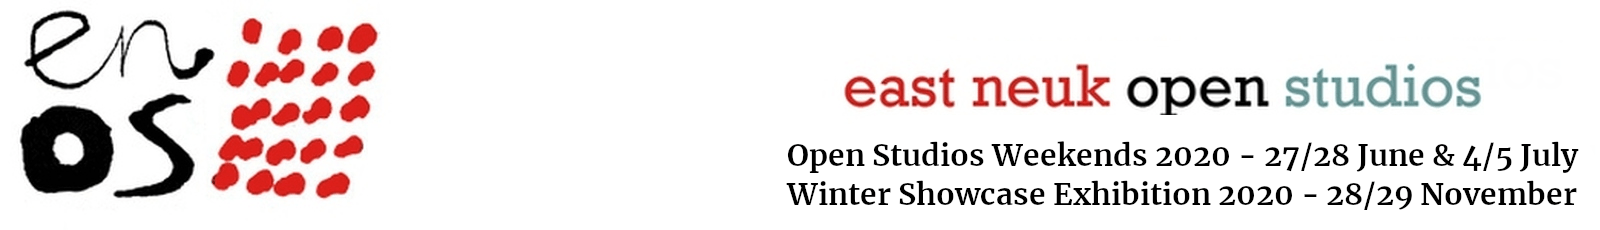 East Neuk Open Studios